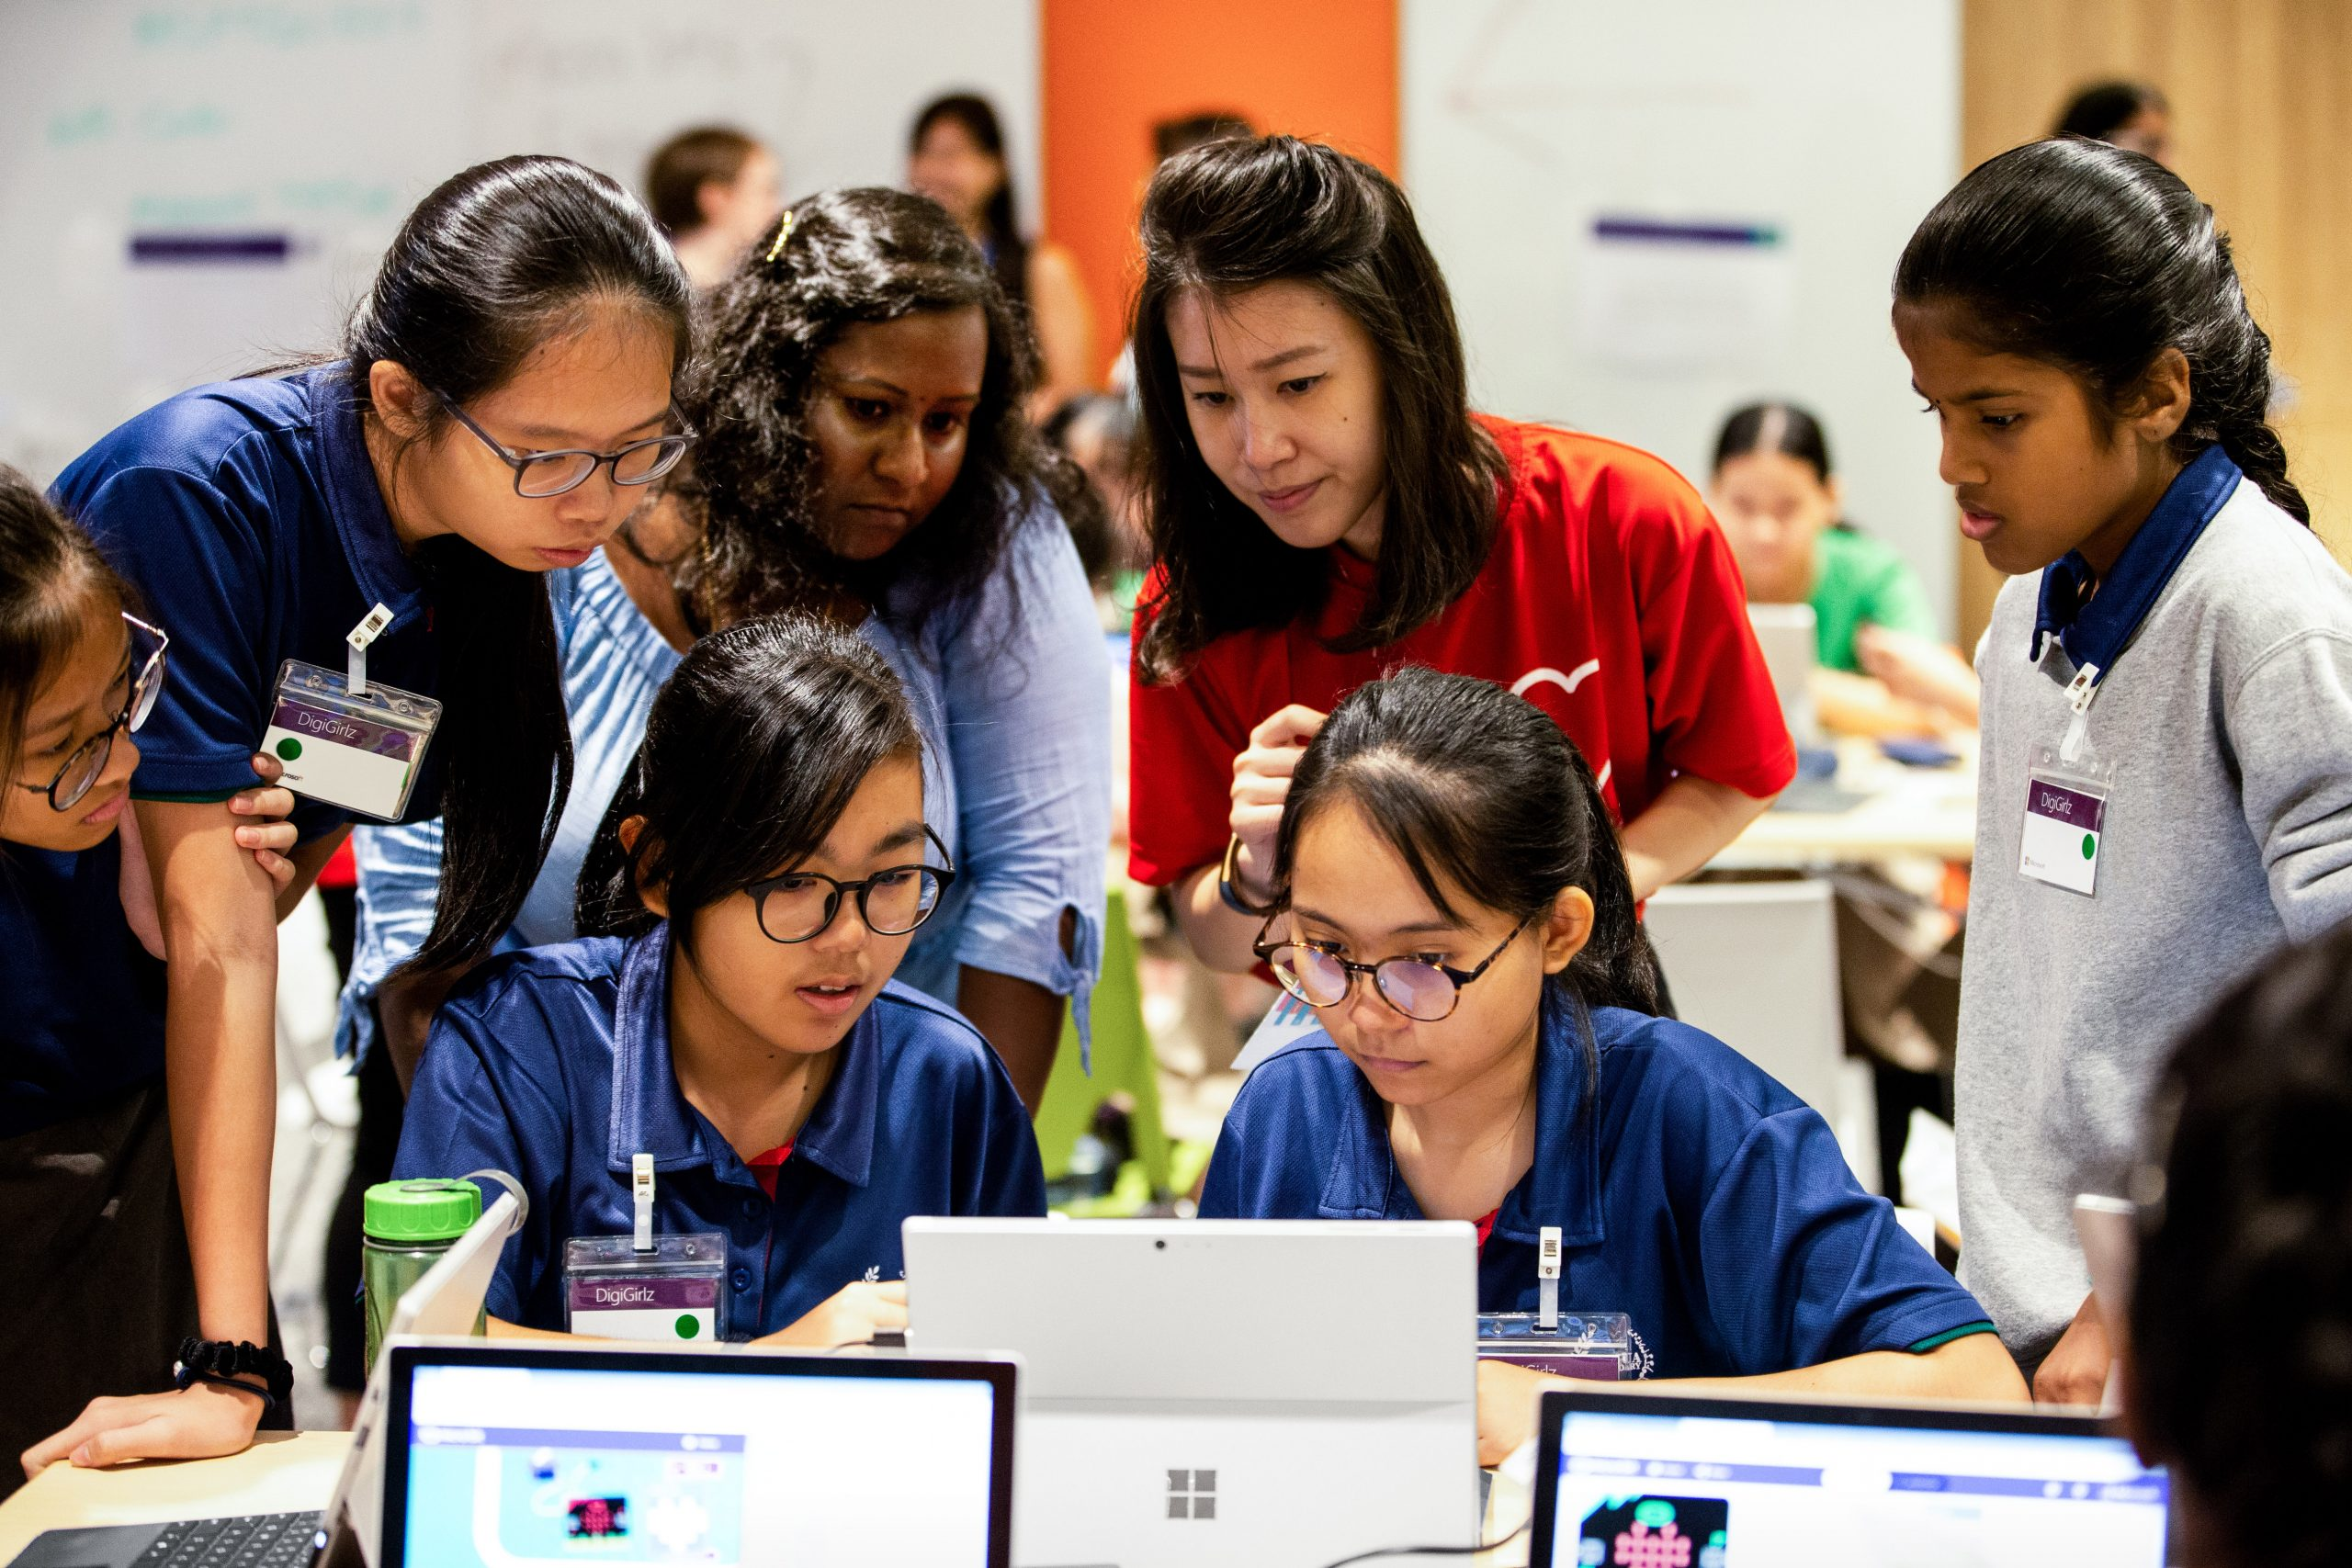 Group of girls at computer